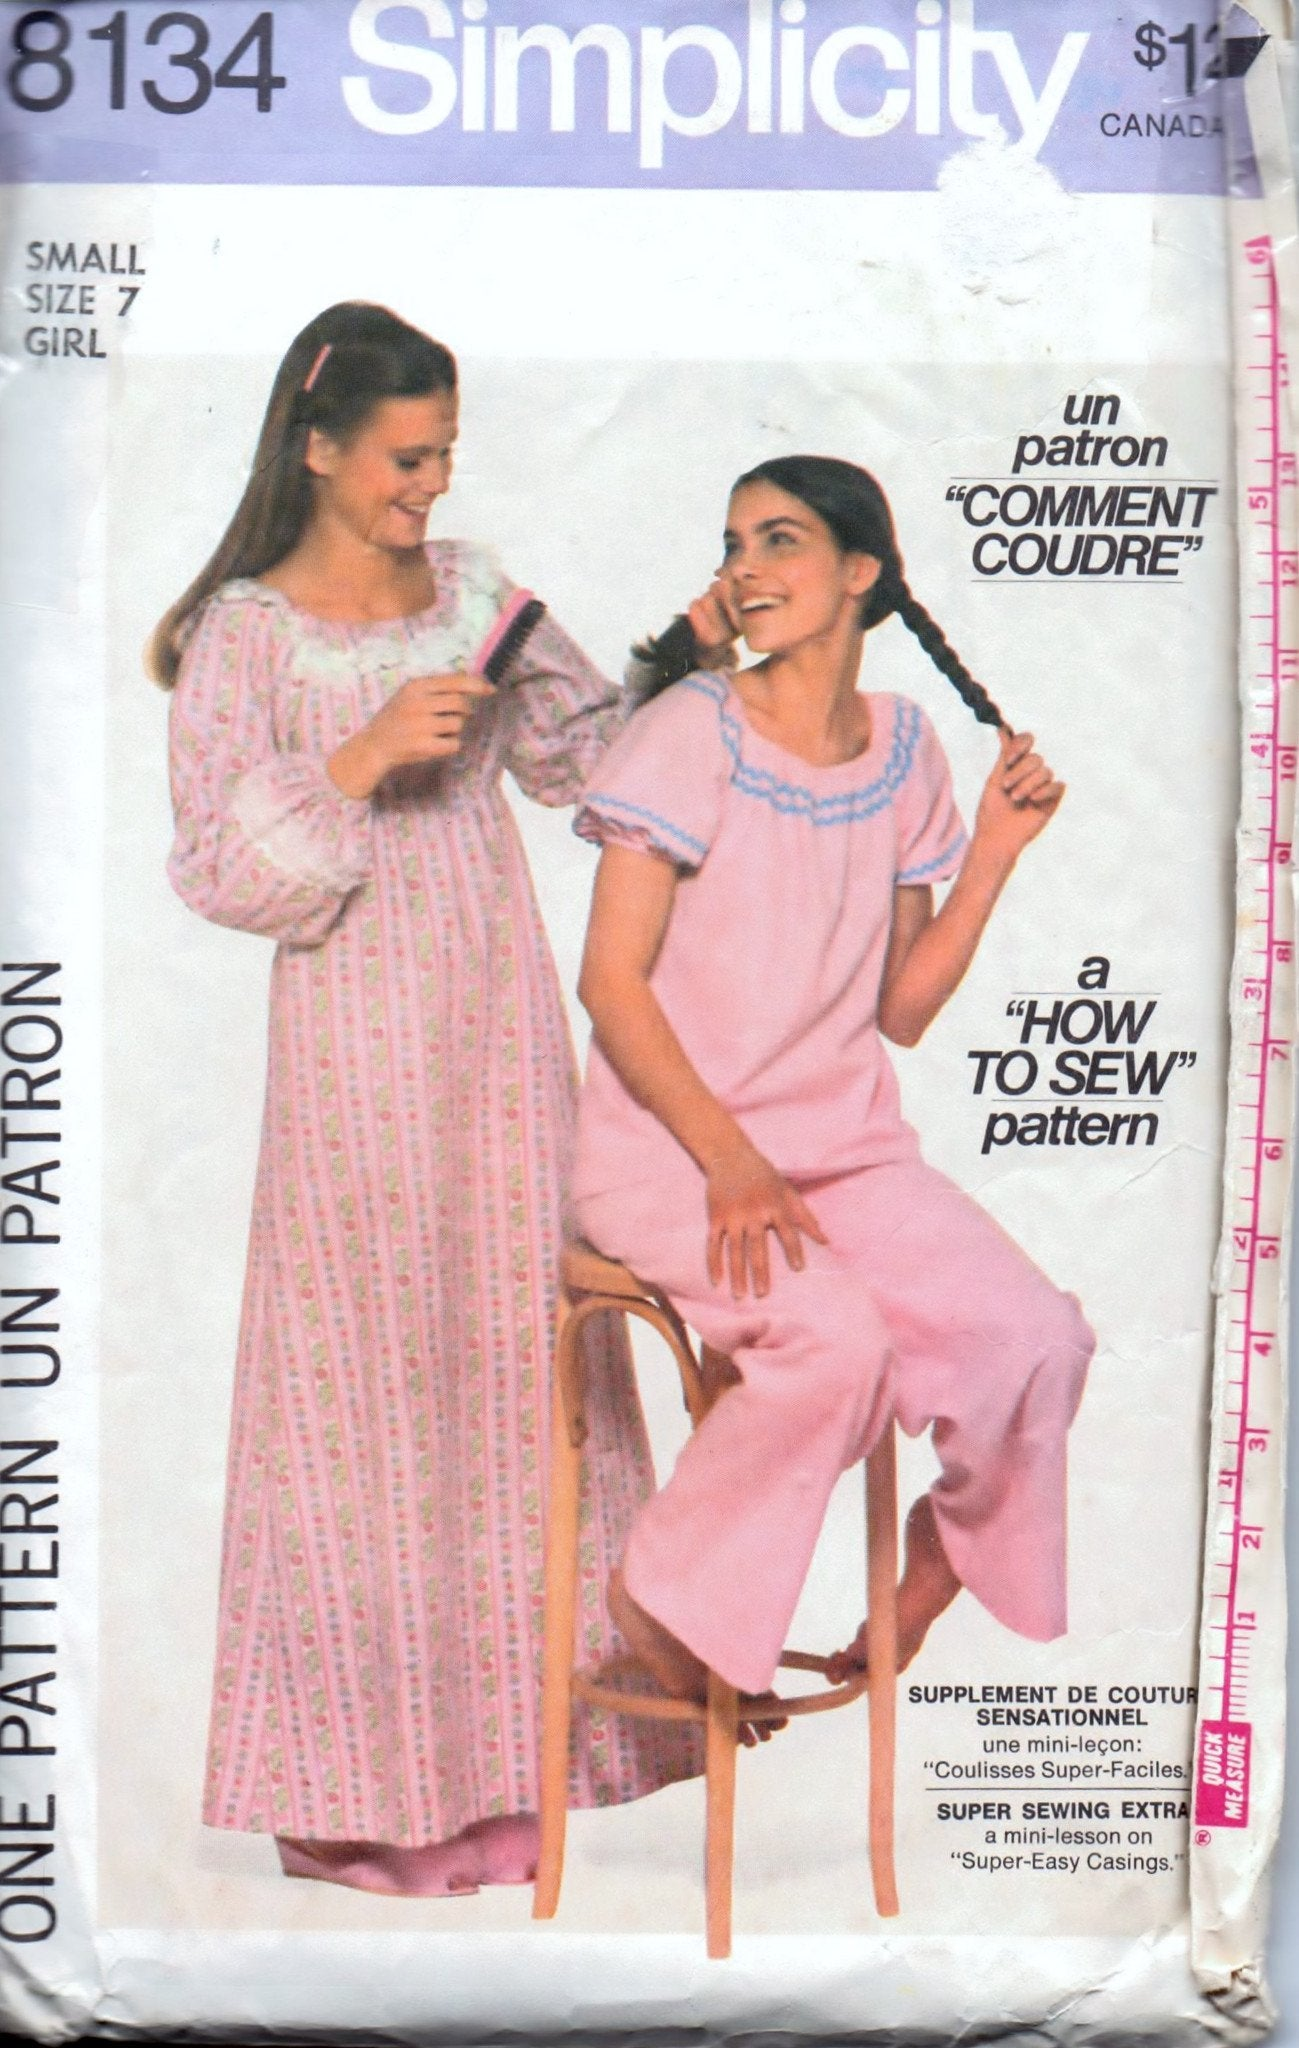 Simplicity 8134 Girls Nightgown Pajamas PJ's Vintage 1970's Sewing Pattern - VintageStitching - Vintage Sewing Patterns